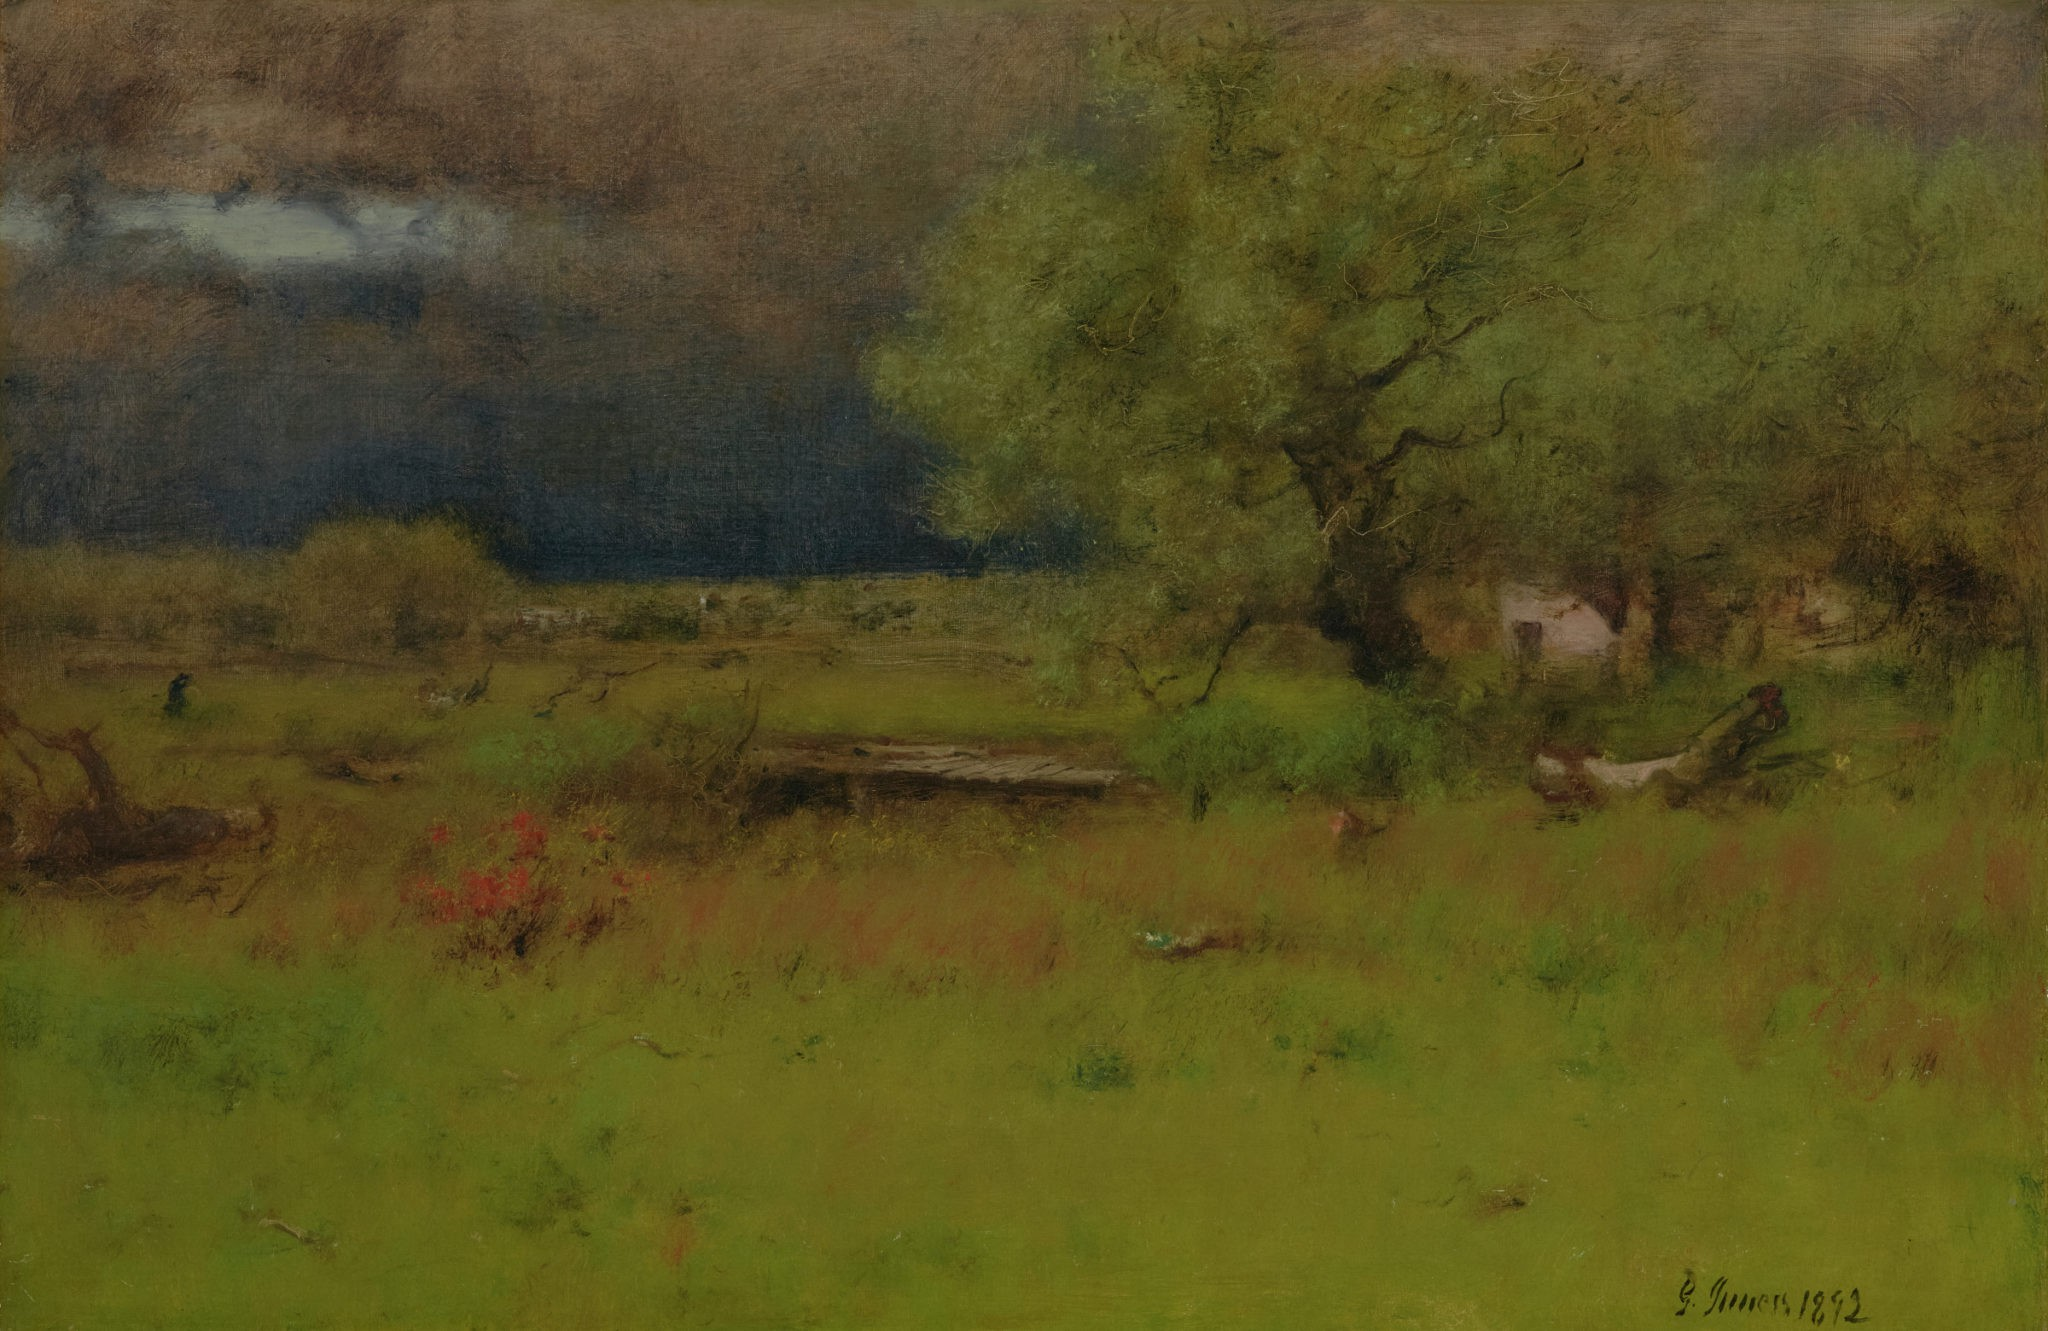 Painted grassy landscape covered in green with a dark gray sky.